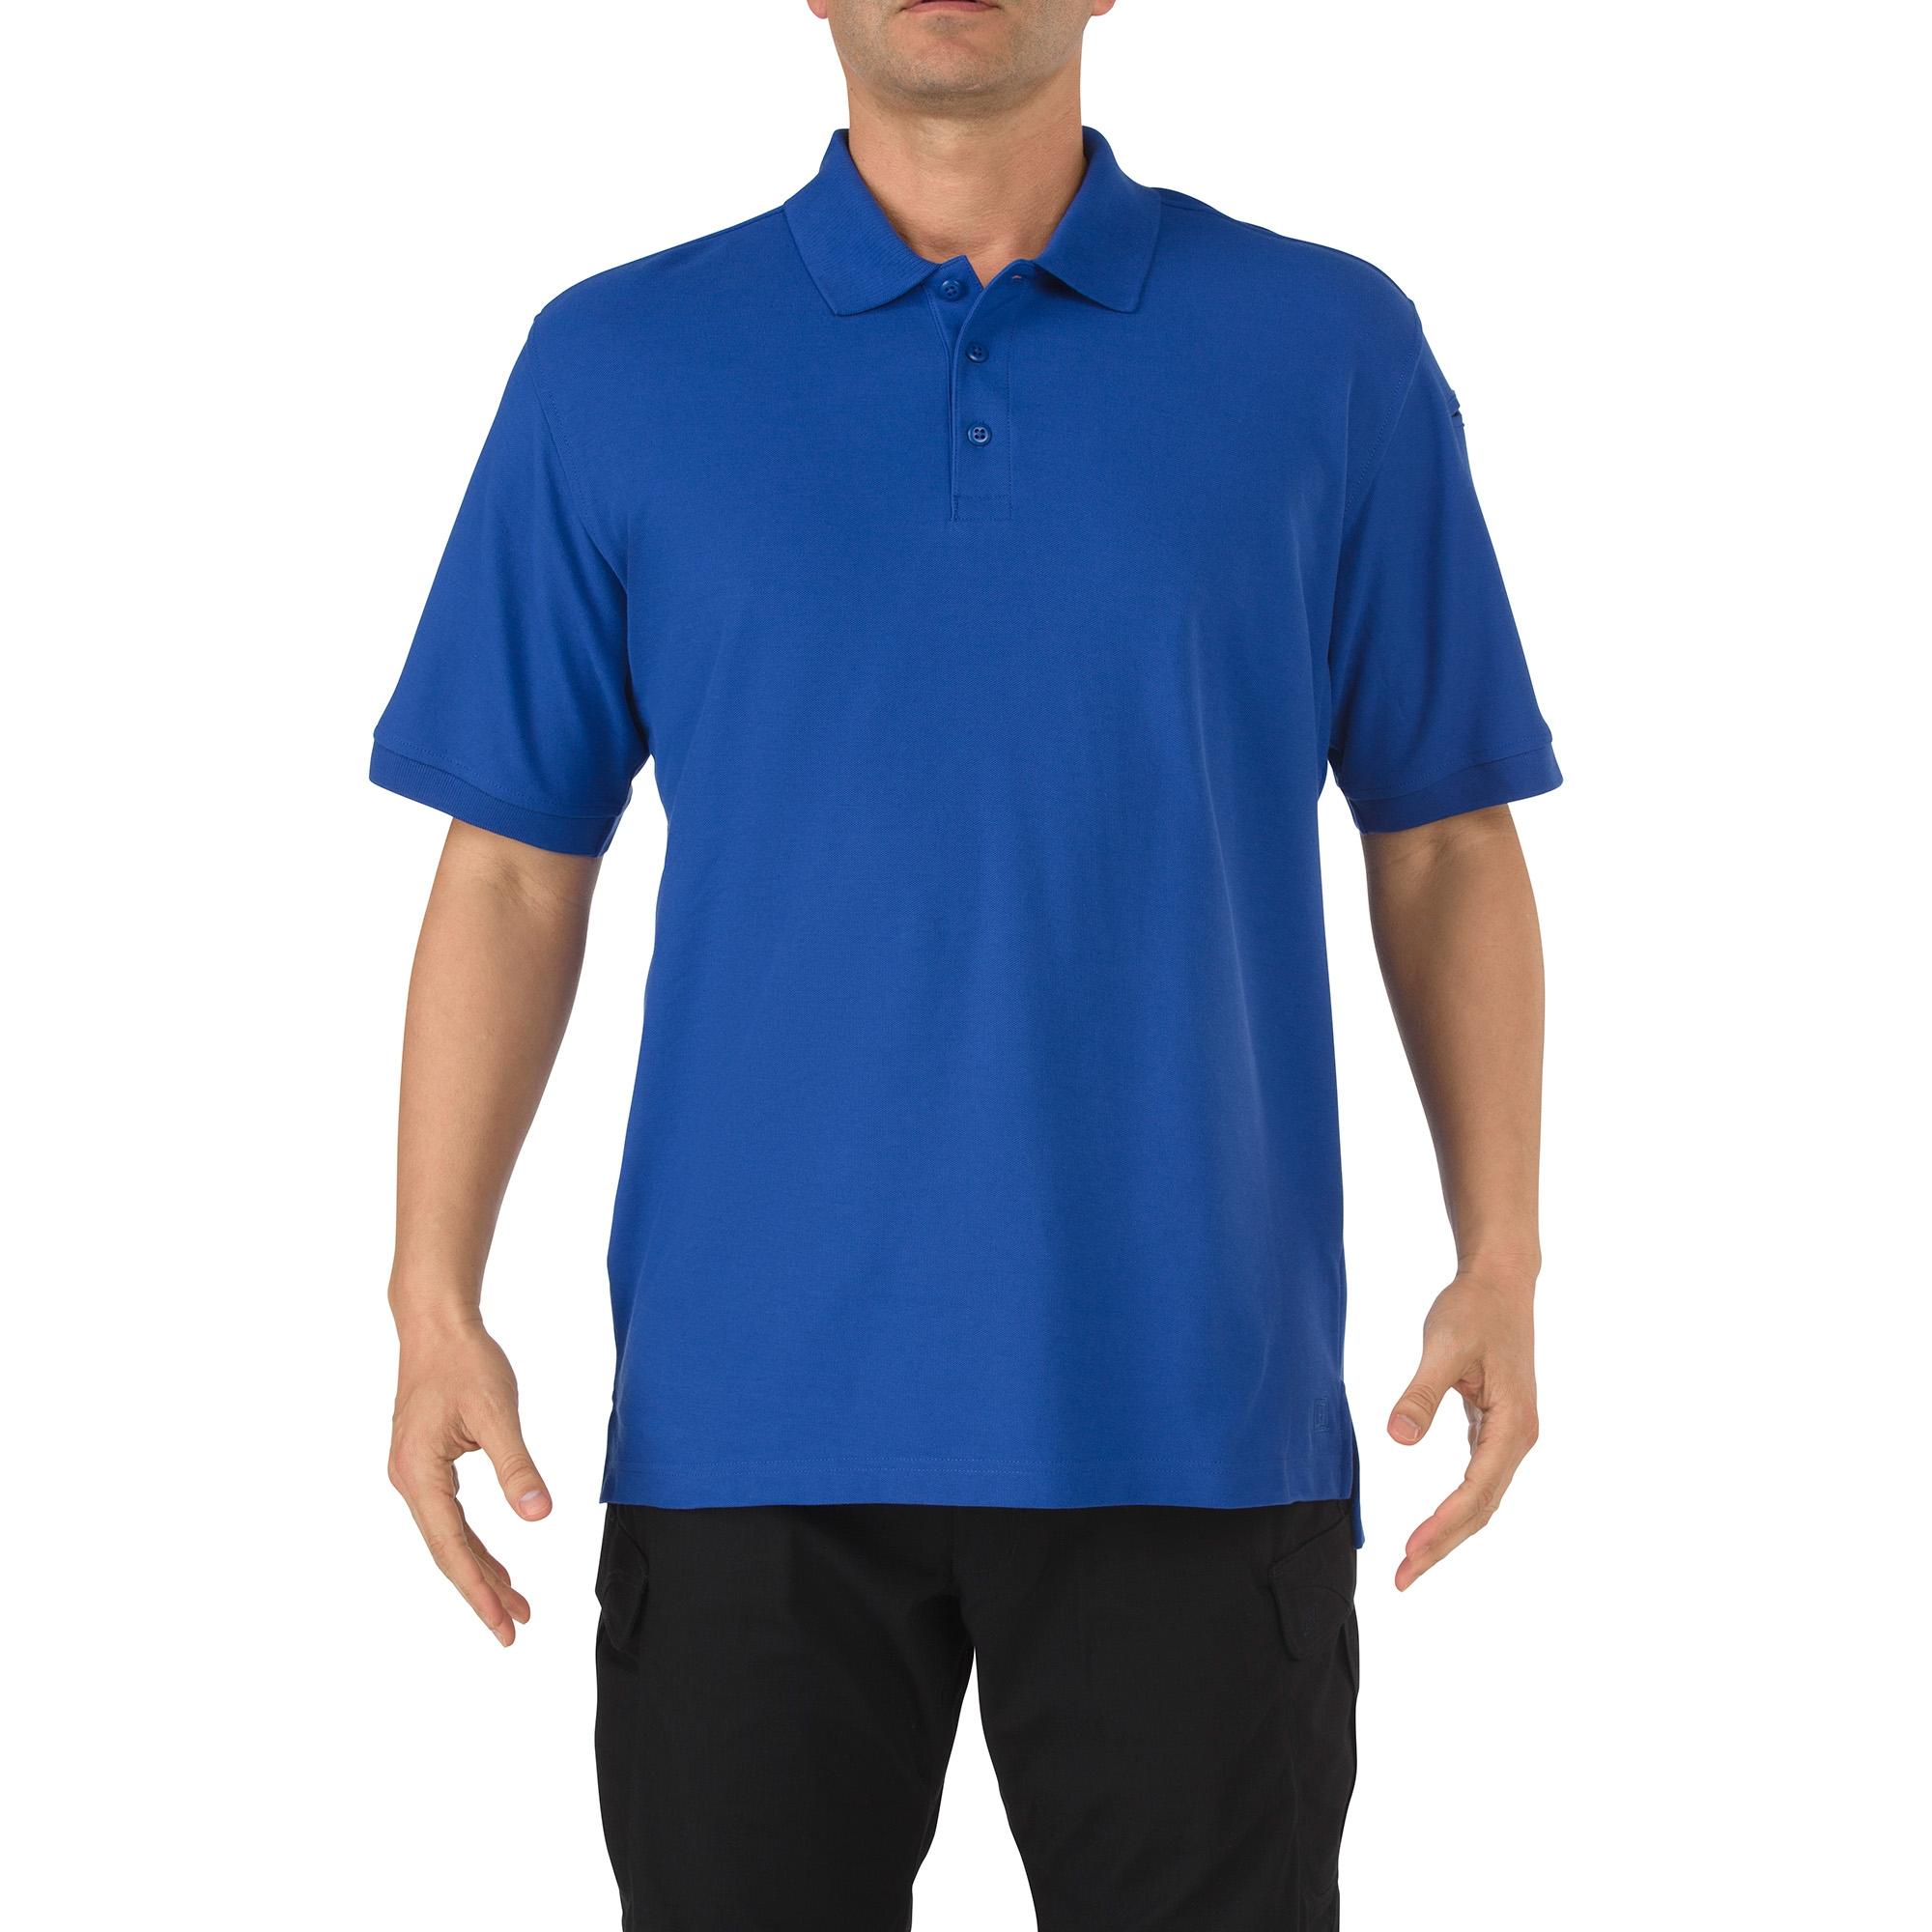 52e81ab3f 5.11 Tactical Professional Polo Shirt Short Sleeve | RLDM